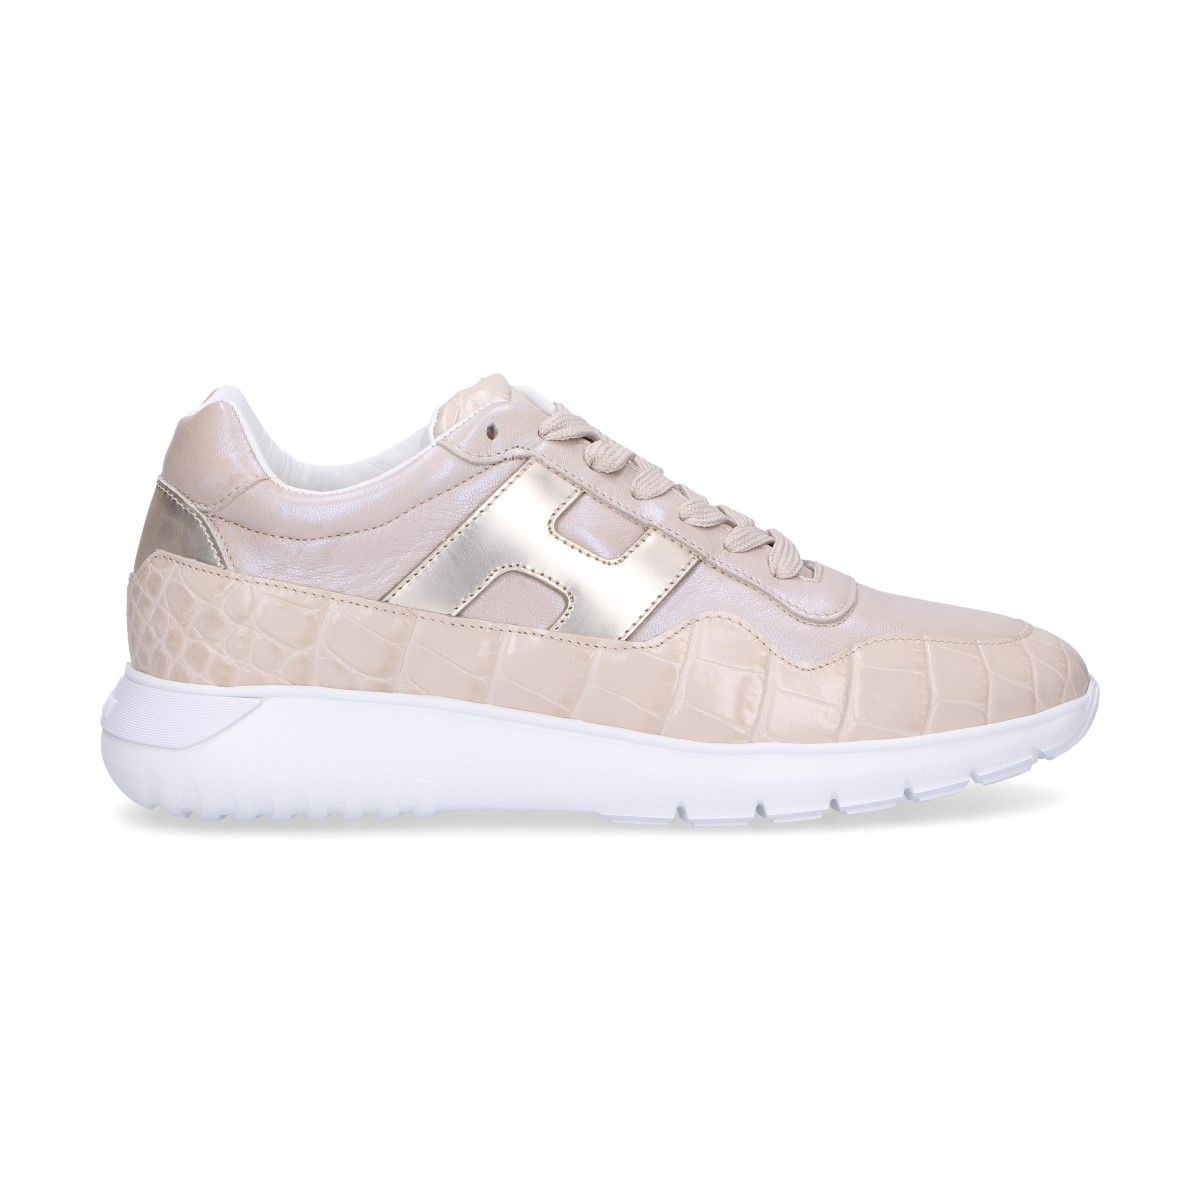 Hogan Pink Leather Sneakers